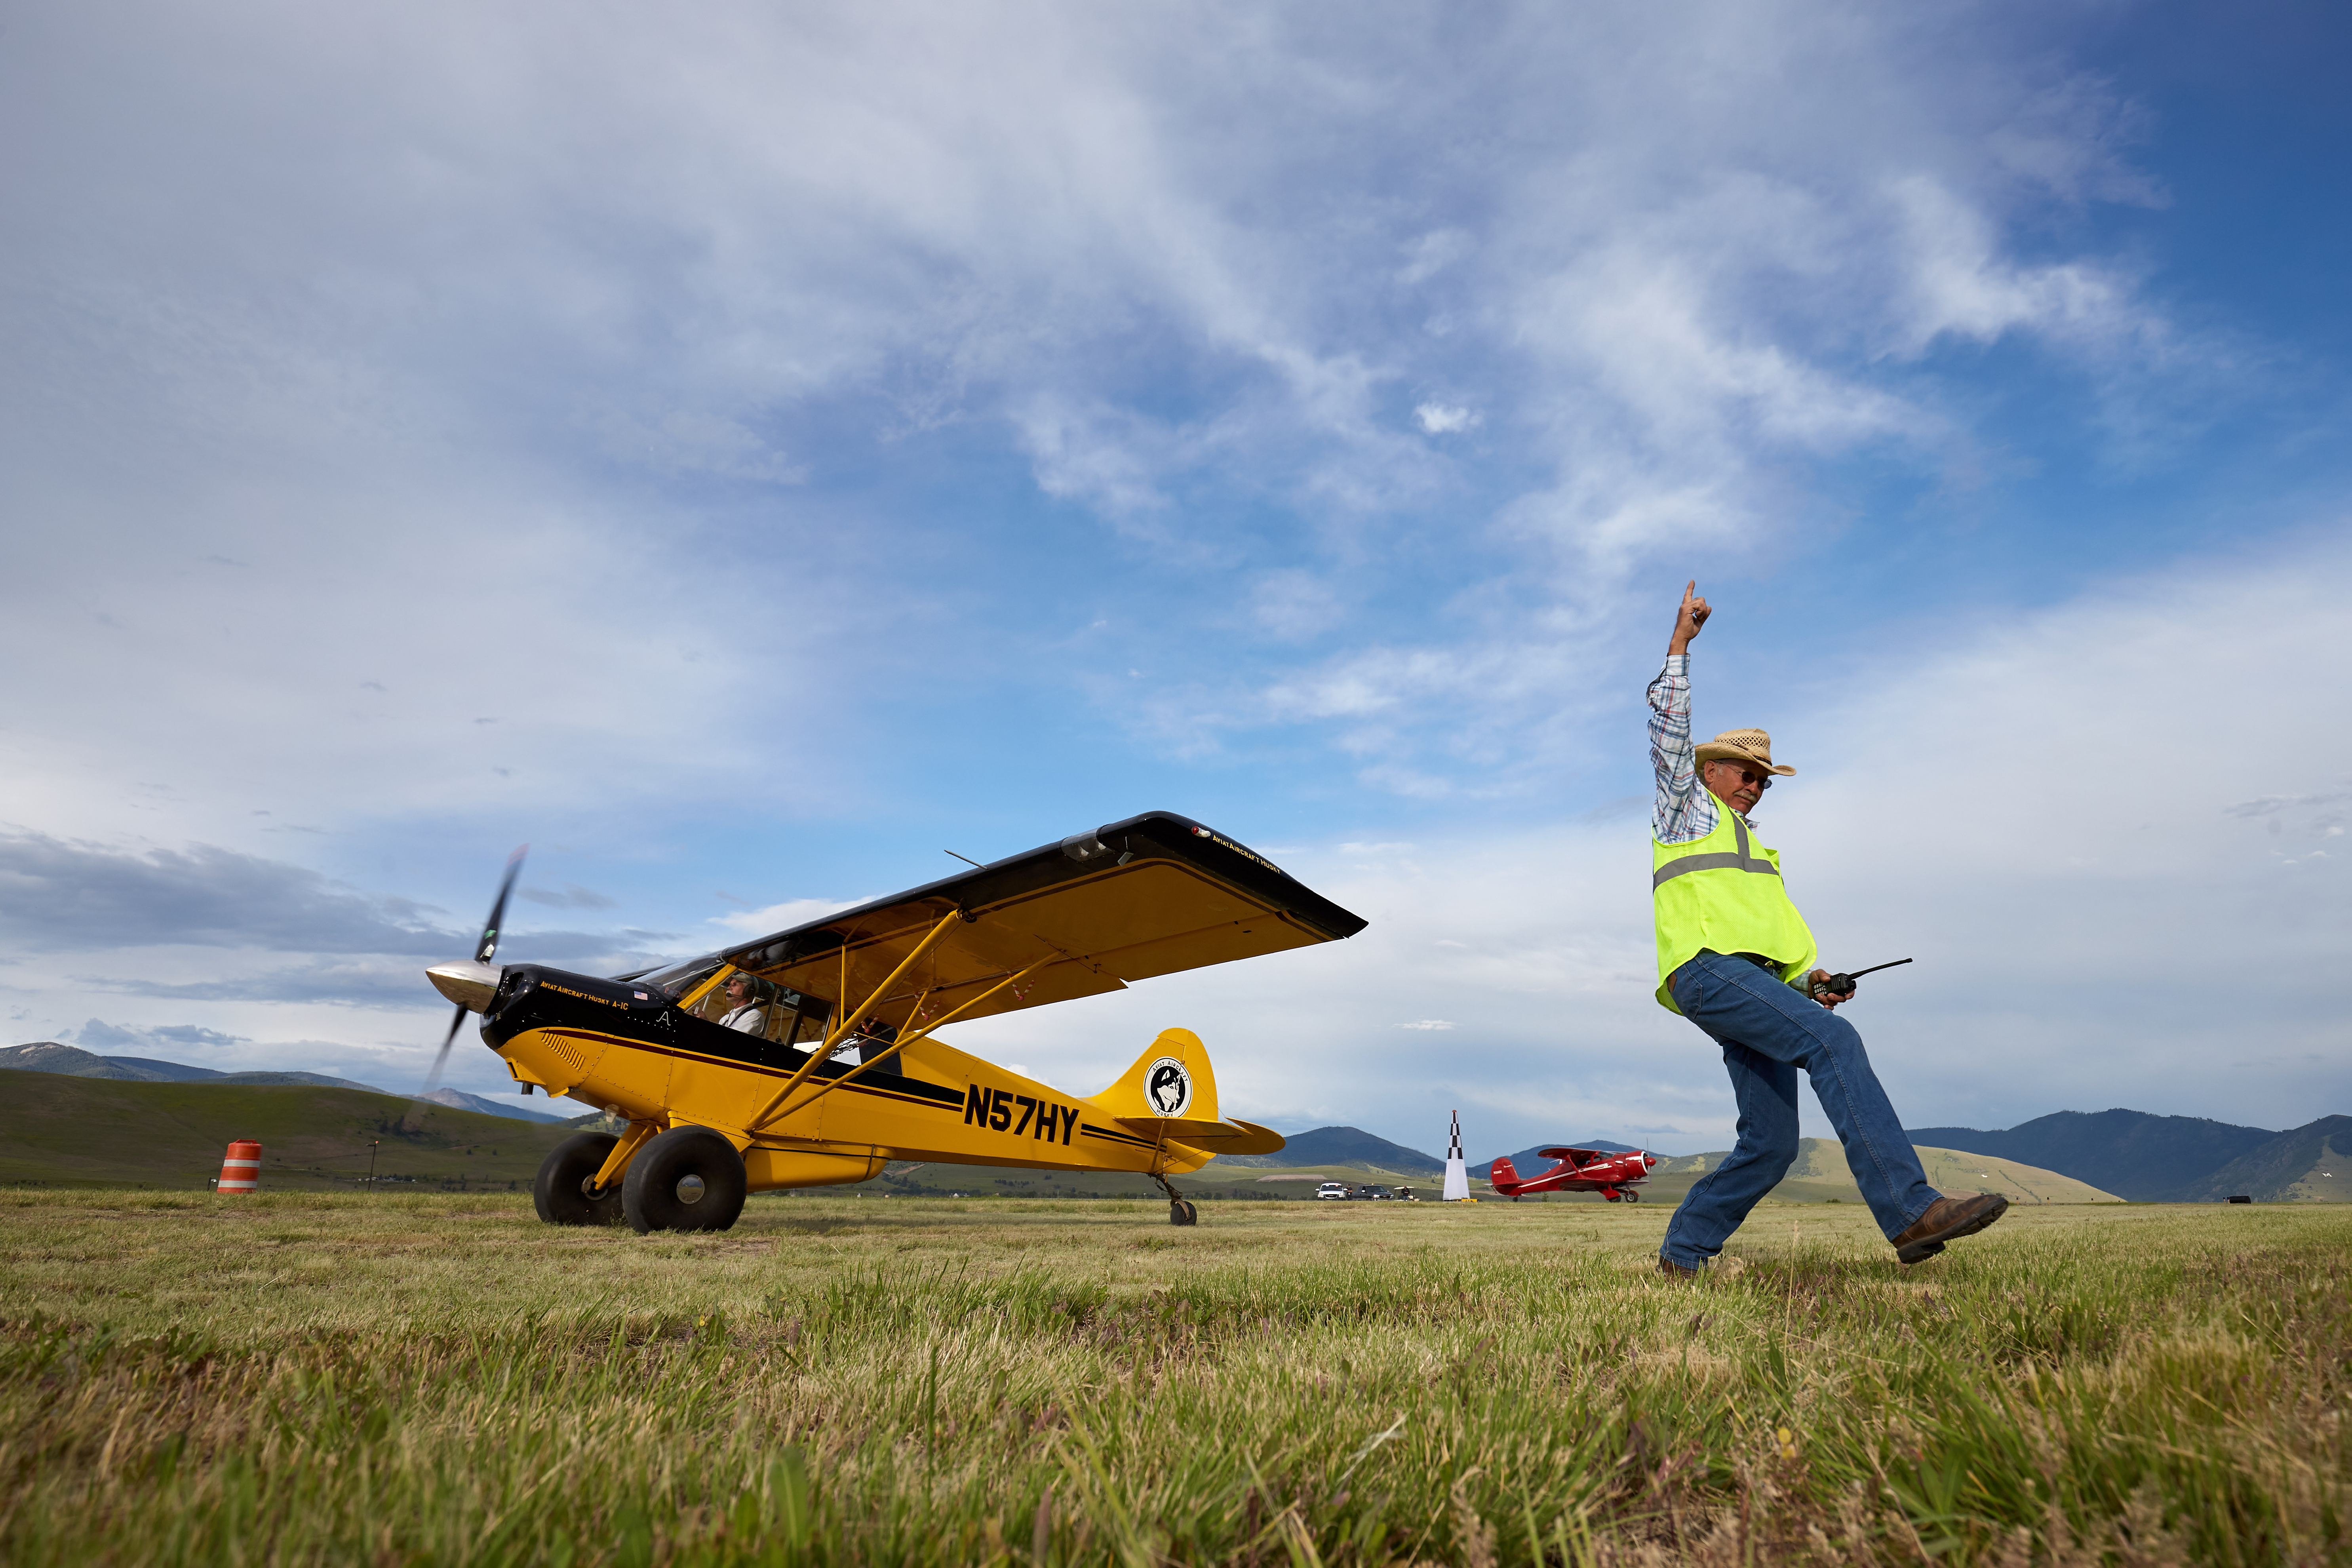 Texan Jimmie Gist, acting Aircraft Wrangler, orchestrates a STOL (Short Take Off and Landing) demonstration at the 2018 AOPA Fly In at Missoula.Missoula Airport (MSO)Missoula, MT